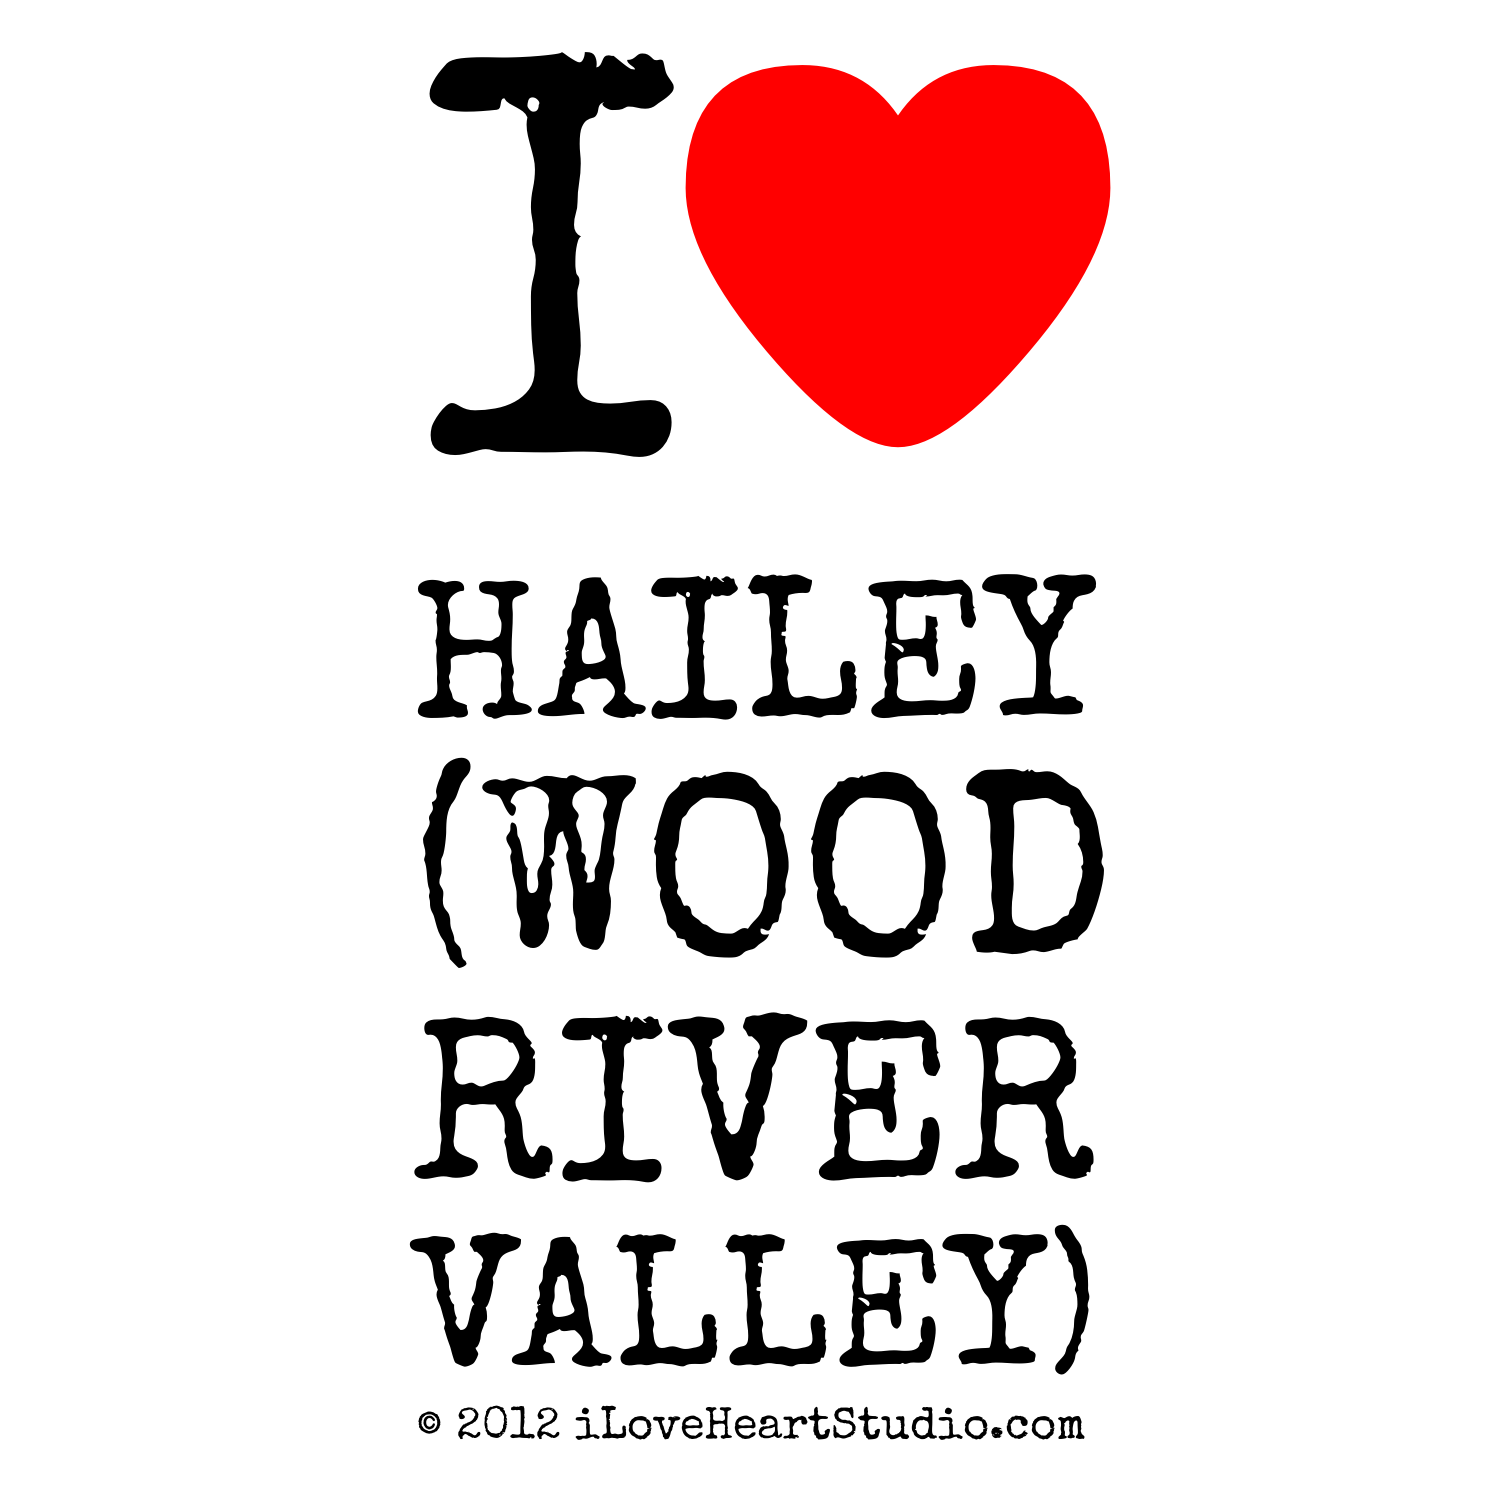 I love heart hailey wood river valley design on poster Wood valley designs